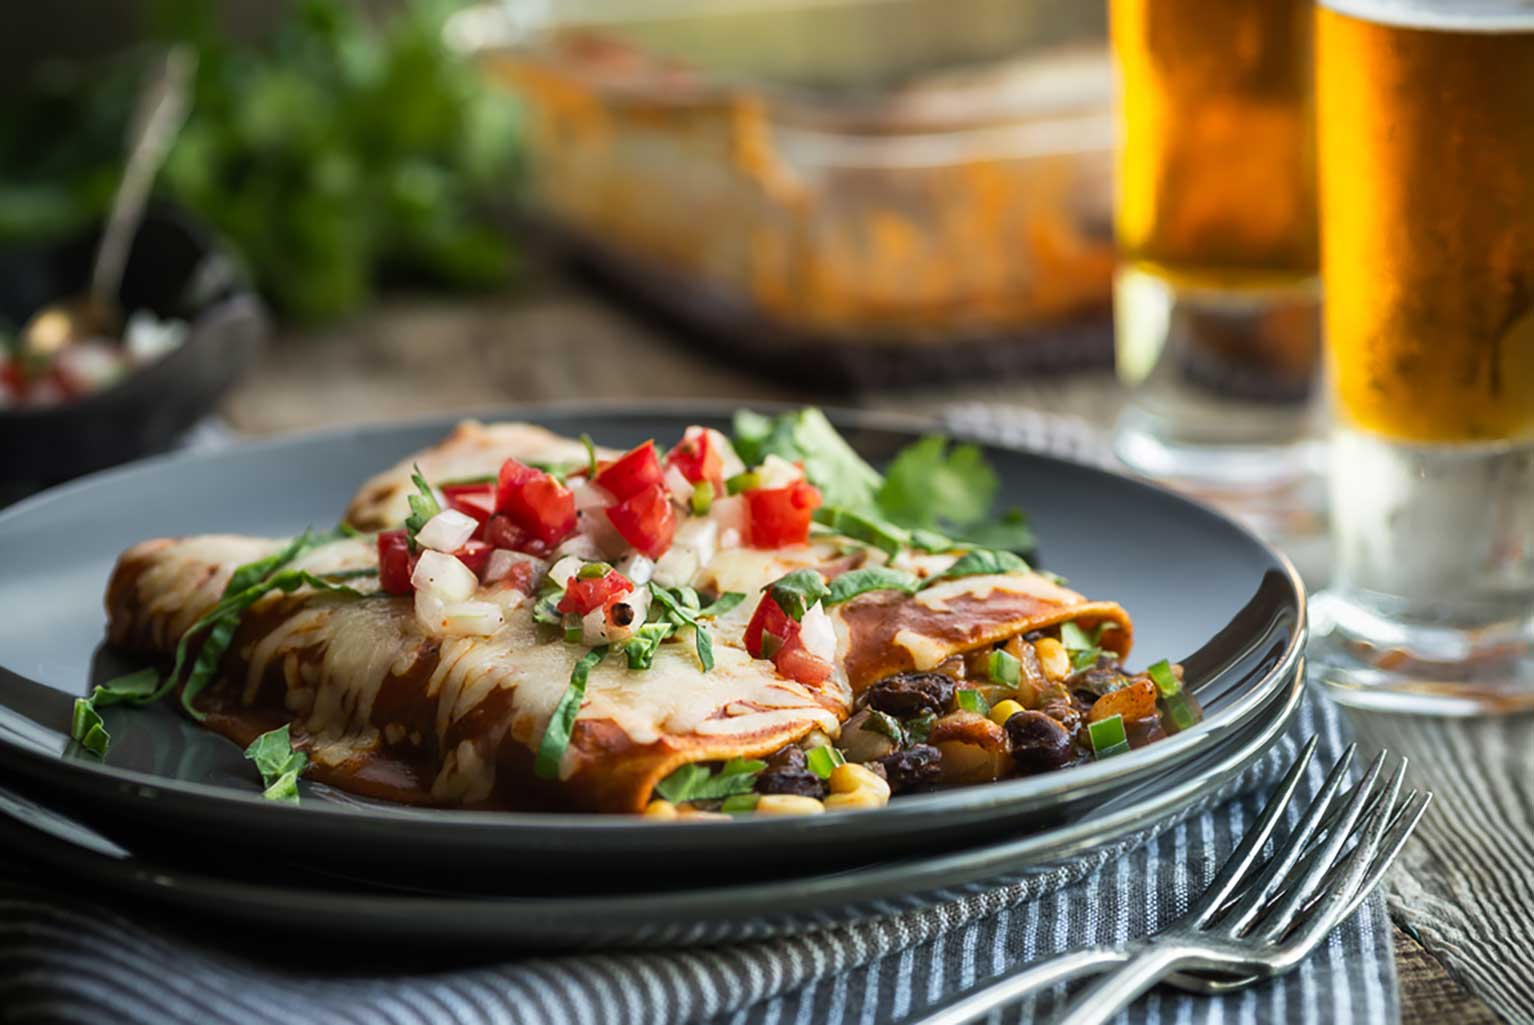 Black-bean-and-corn-enchiladas-are-an-easy-and-cost-effective-pantry-dinner